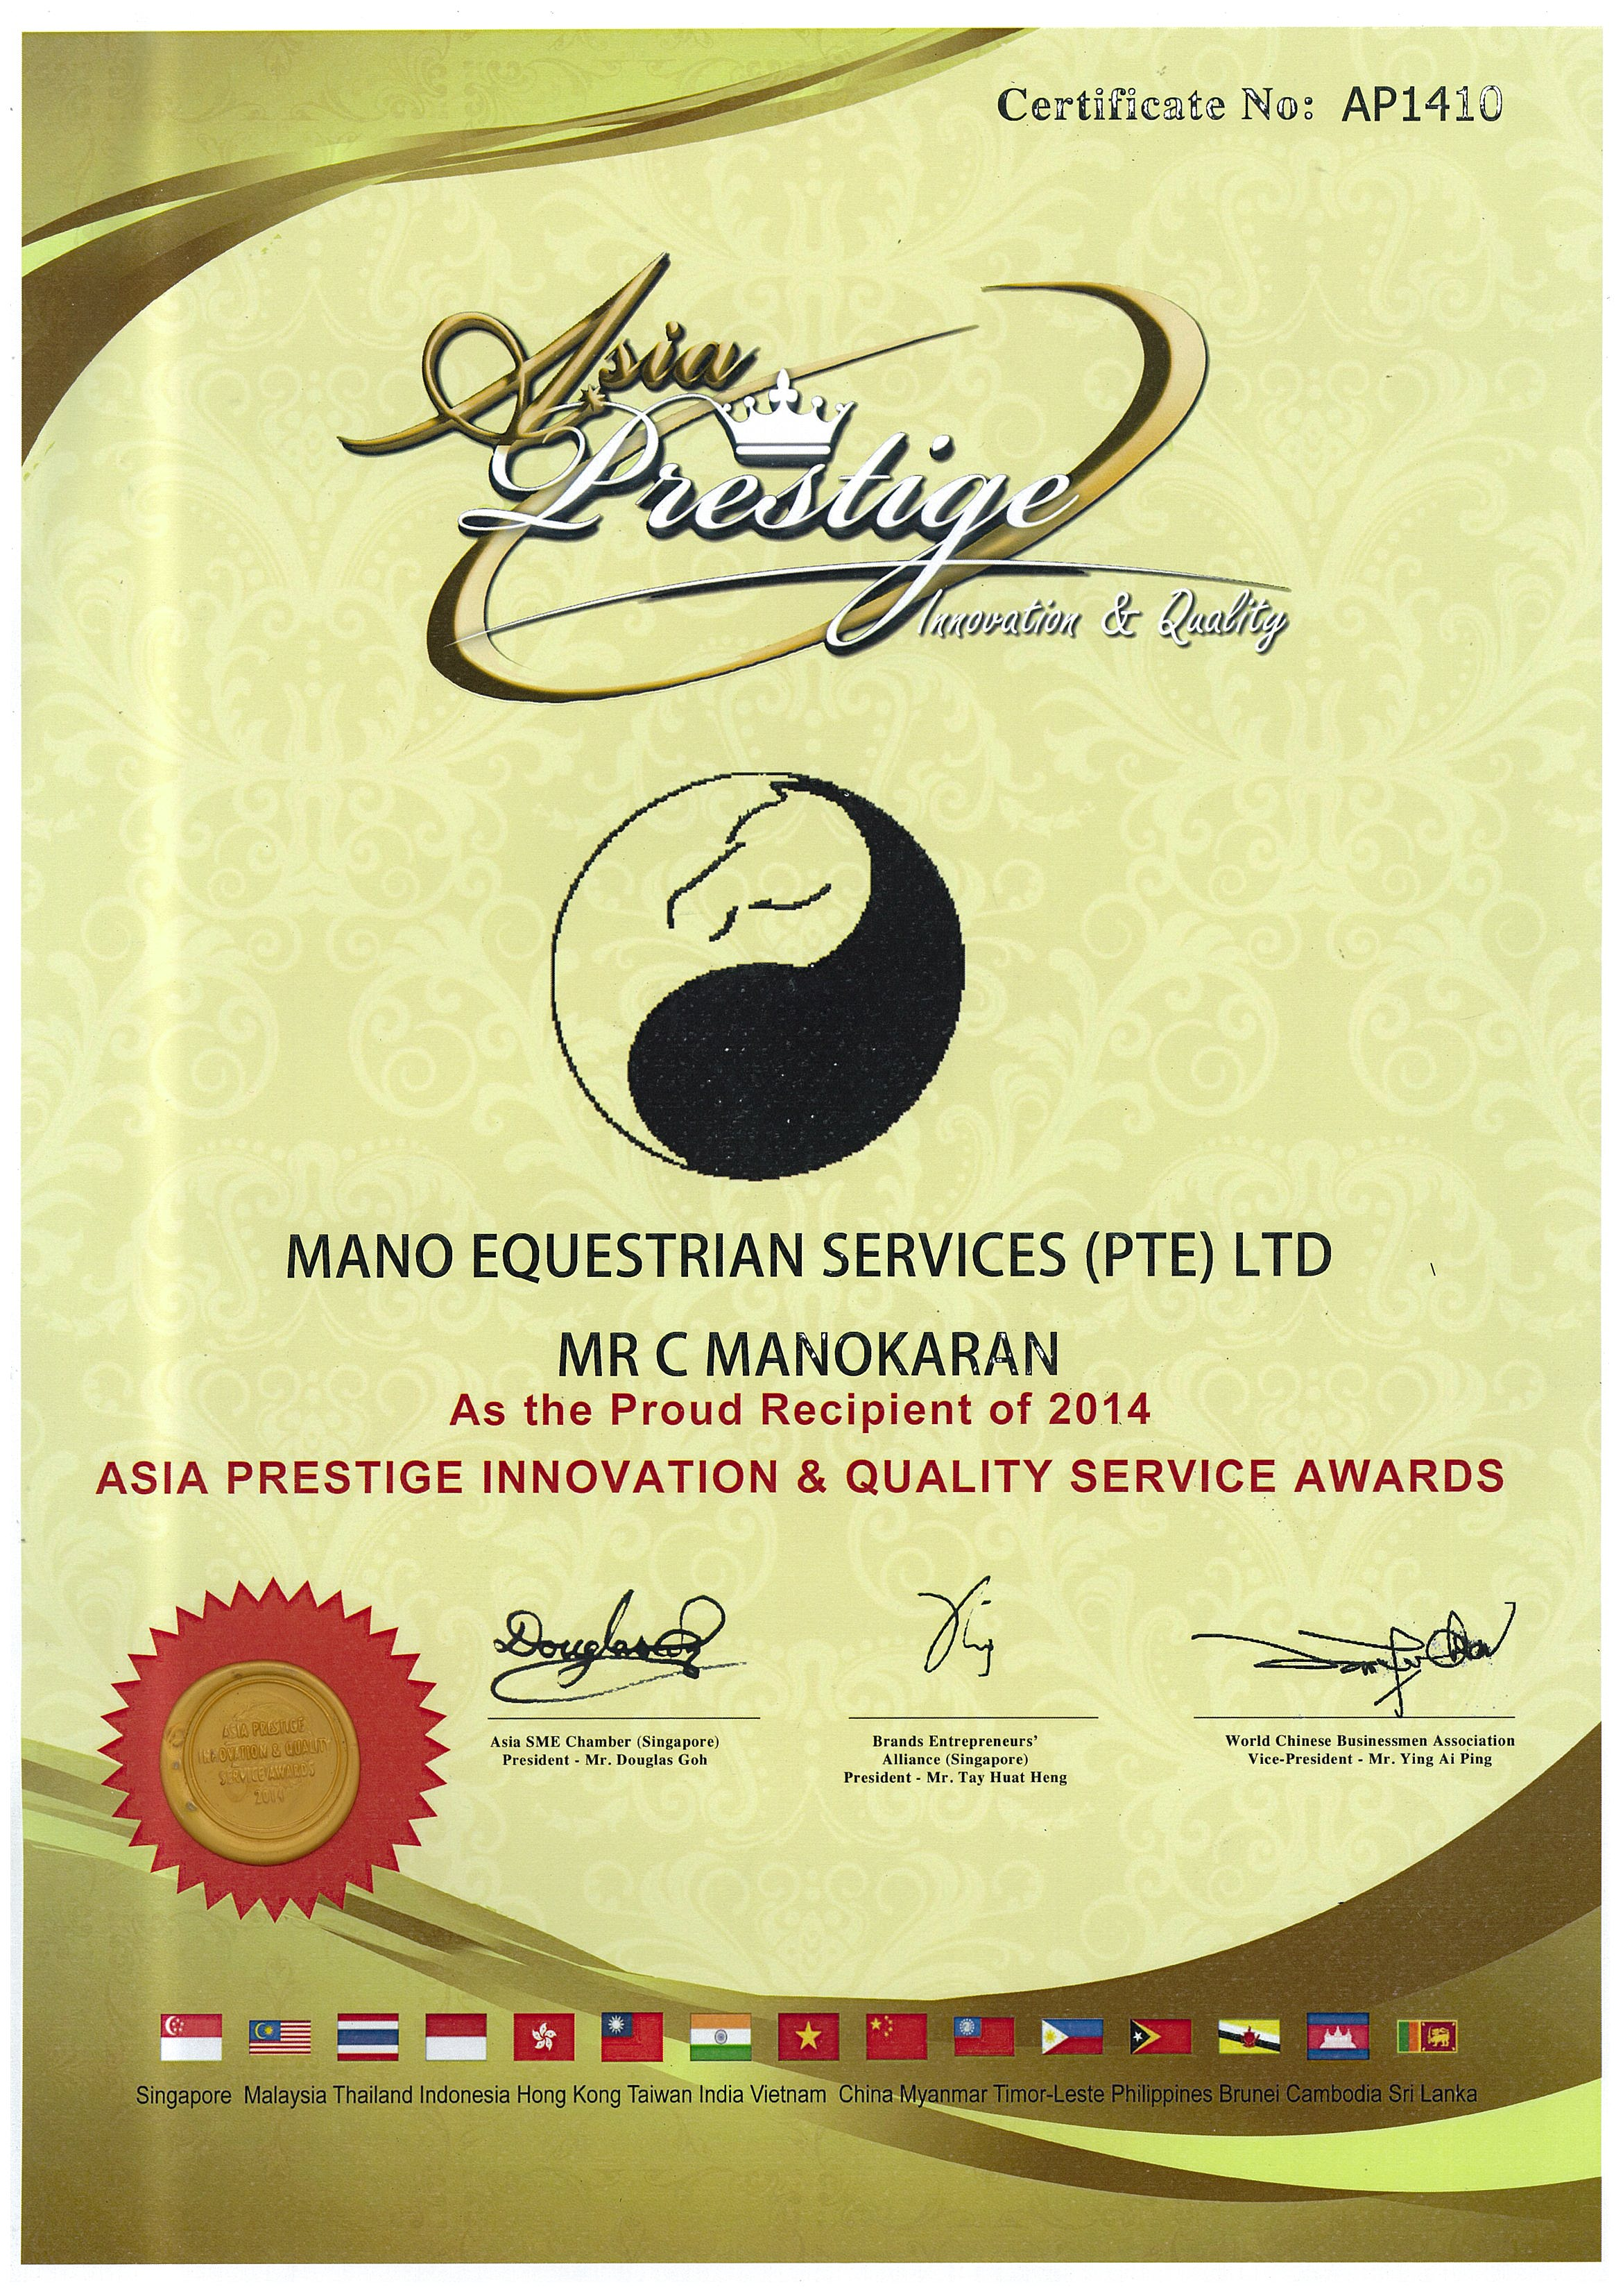 Asia Prestige Innovation and Quality Service Award